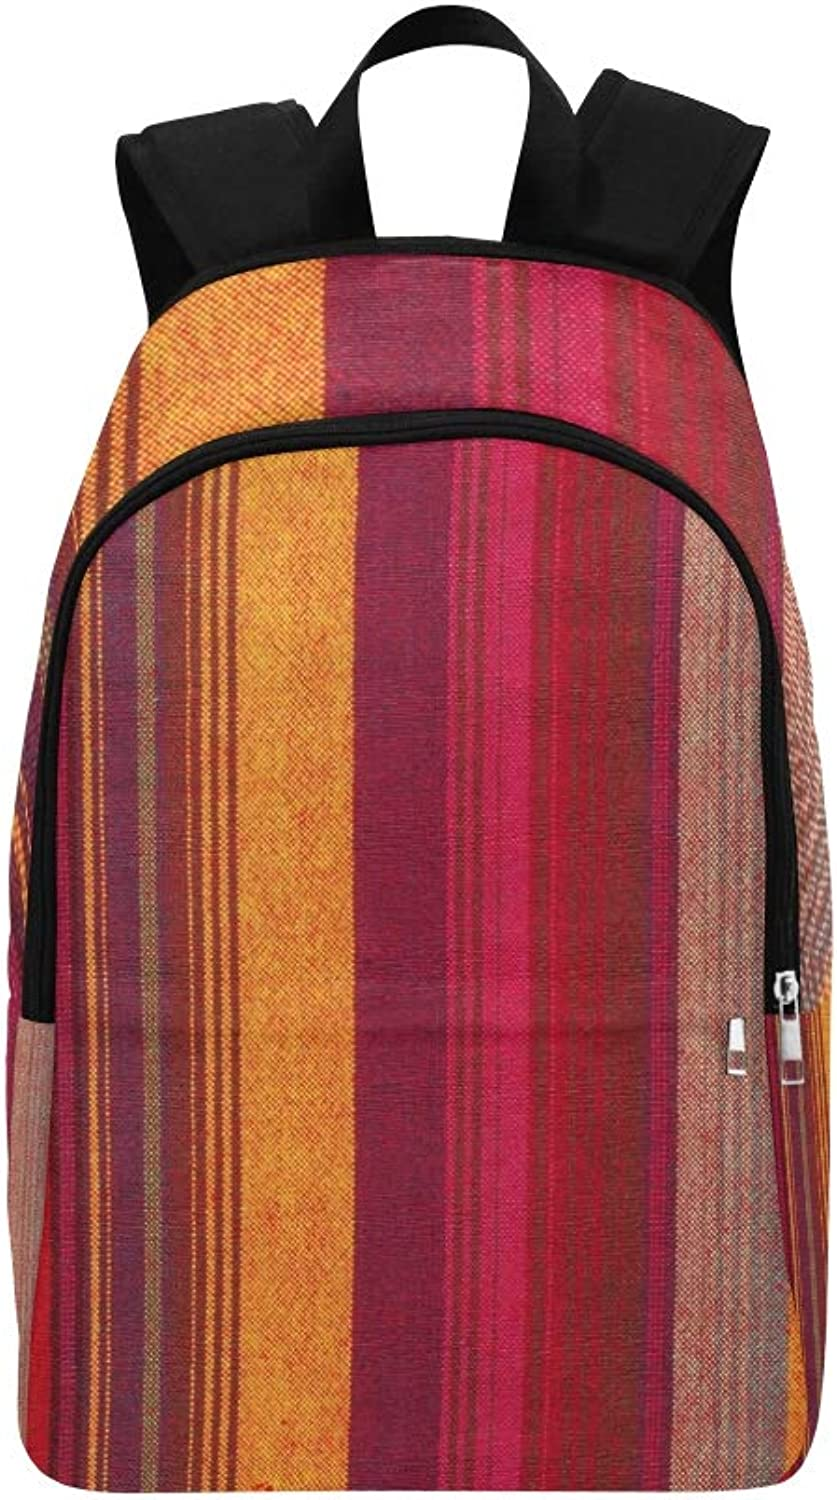 colorful Striped Fabric Texture Casual Daypack Travel Bag College School Backpack for Mens and Women